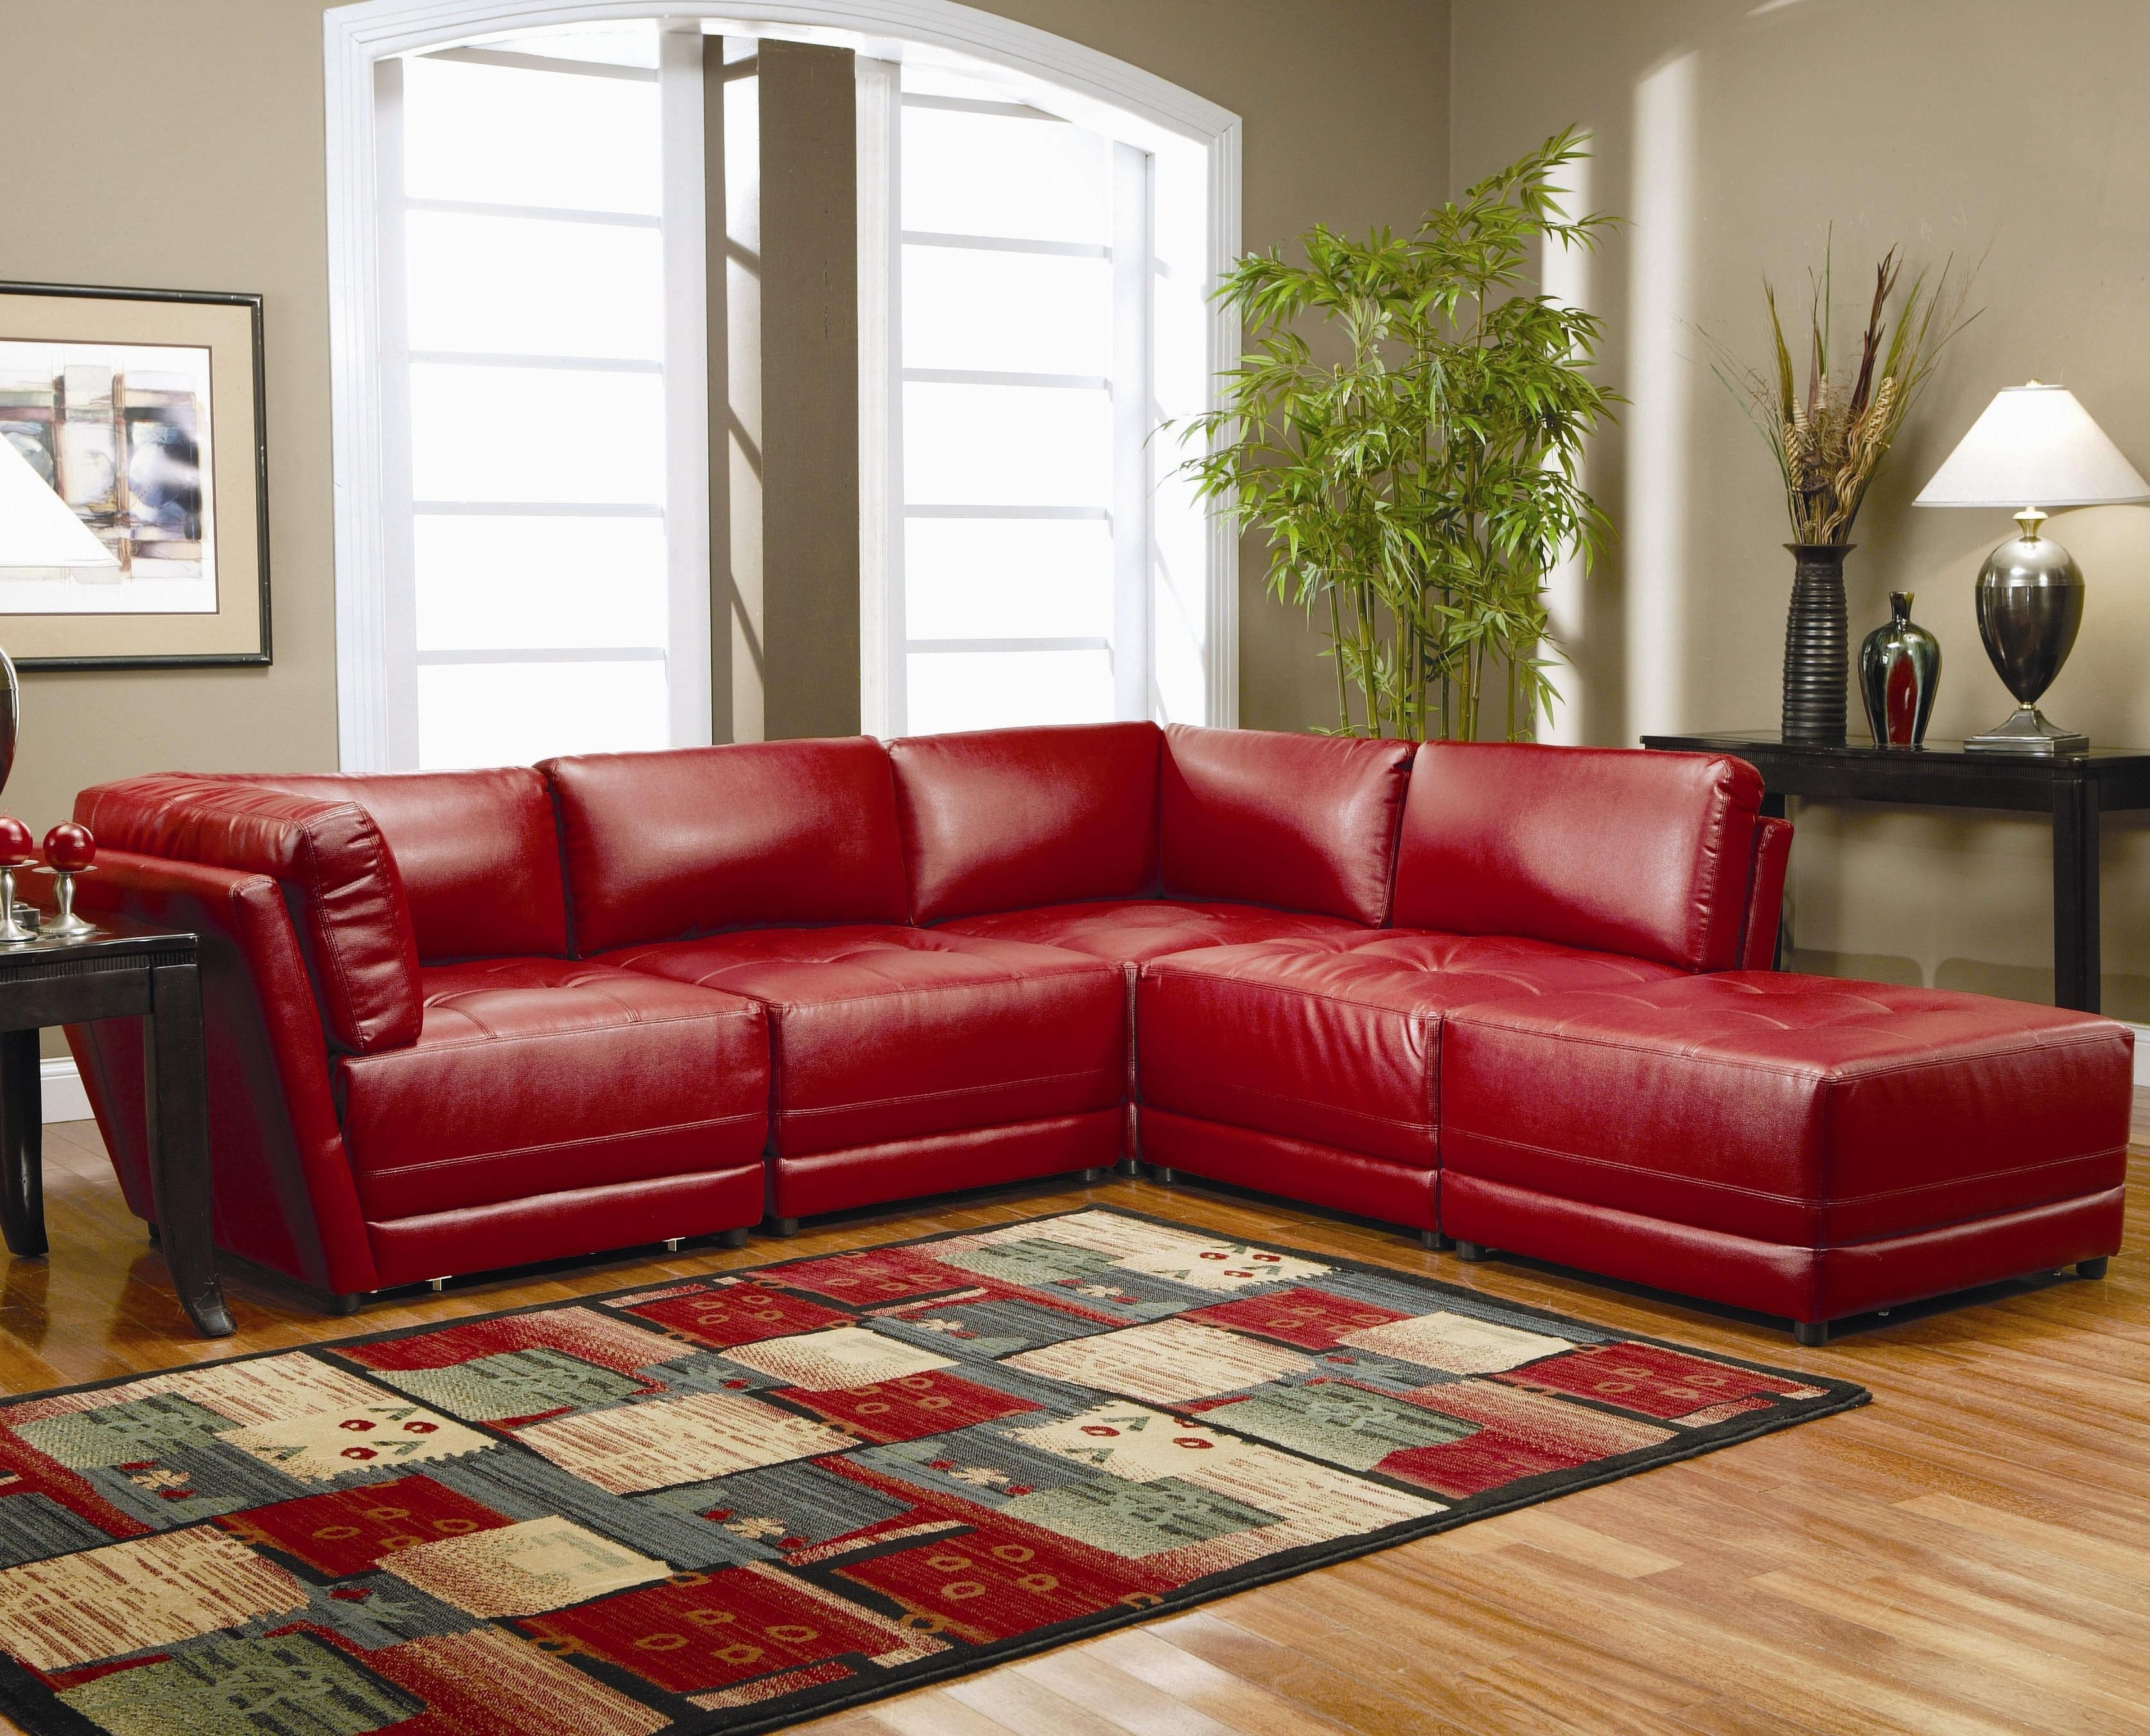 Red Leather Sectional Sofa Sale - Hotelsbacau within Red Leather Sectional Couches